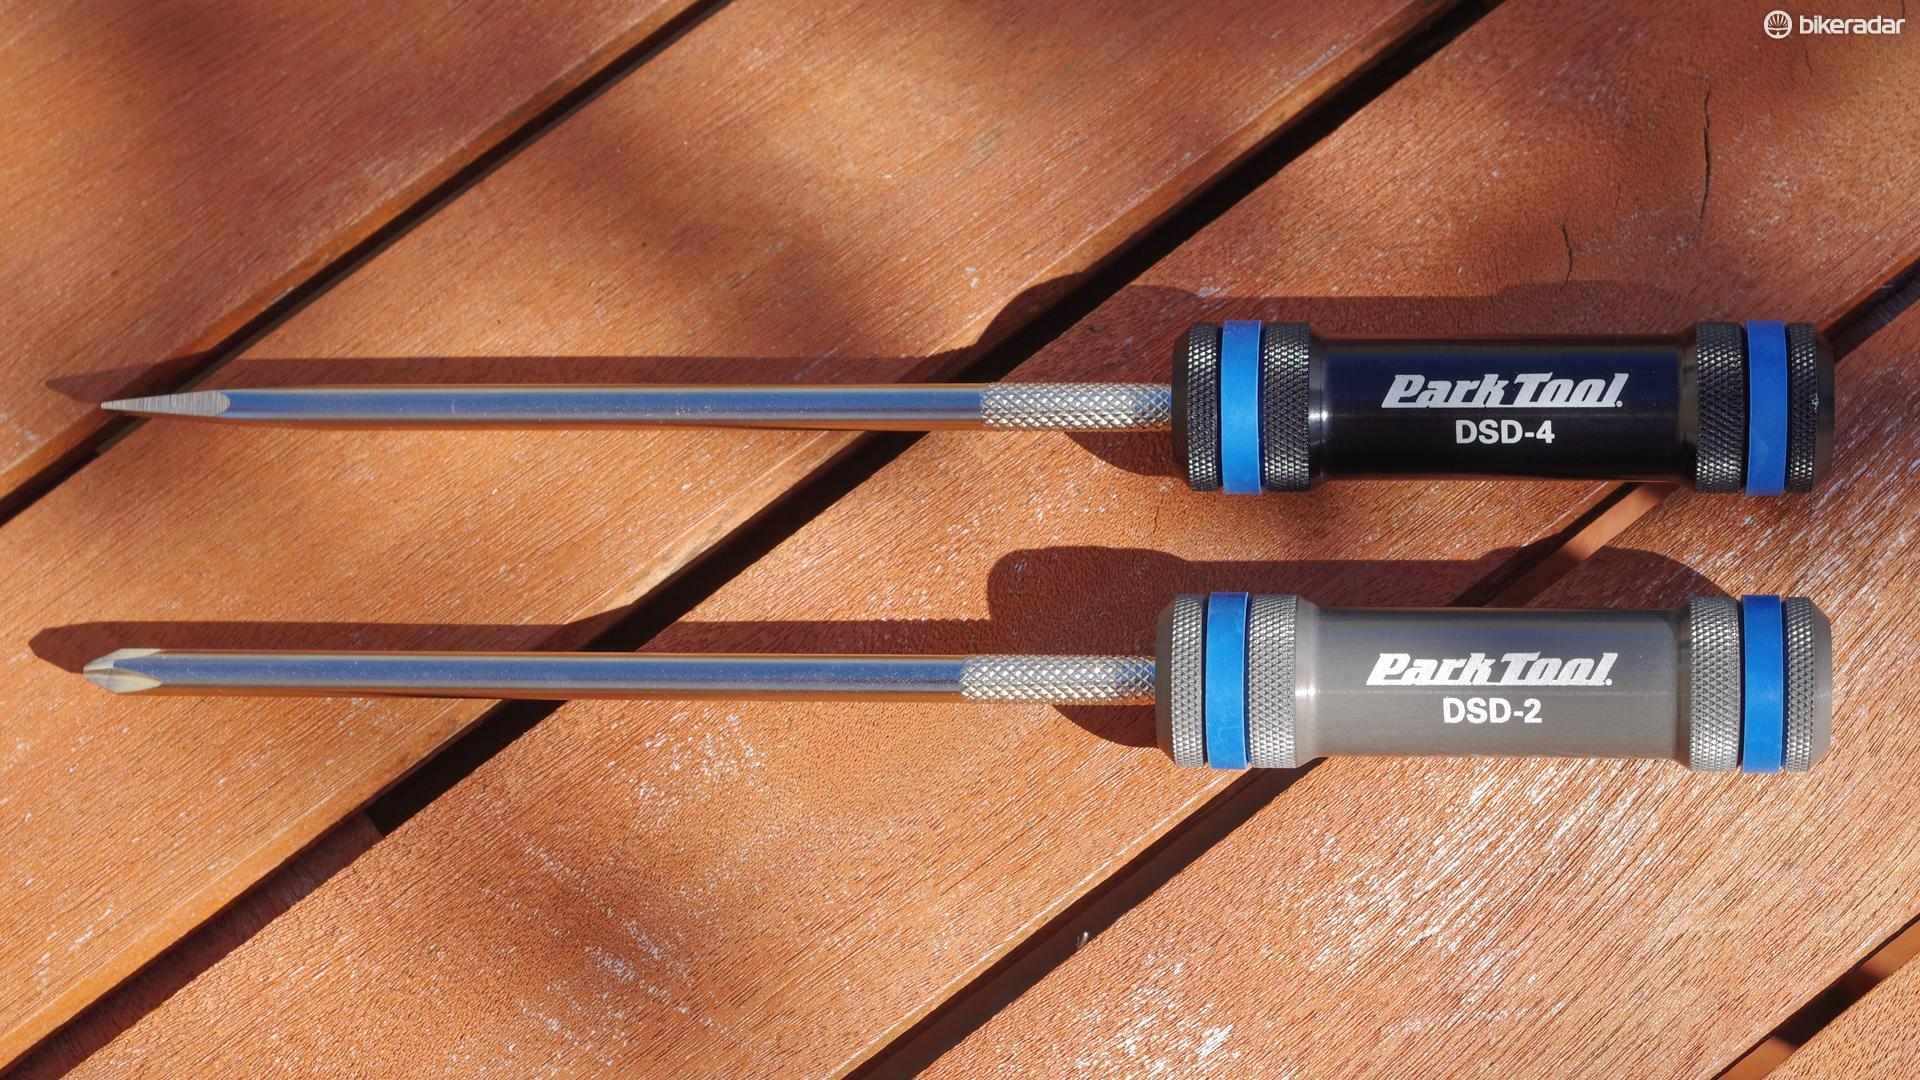 Park Tool's new screwdrivers will delight tool nerds